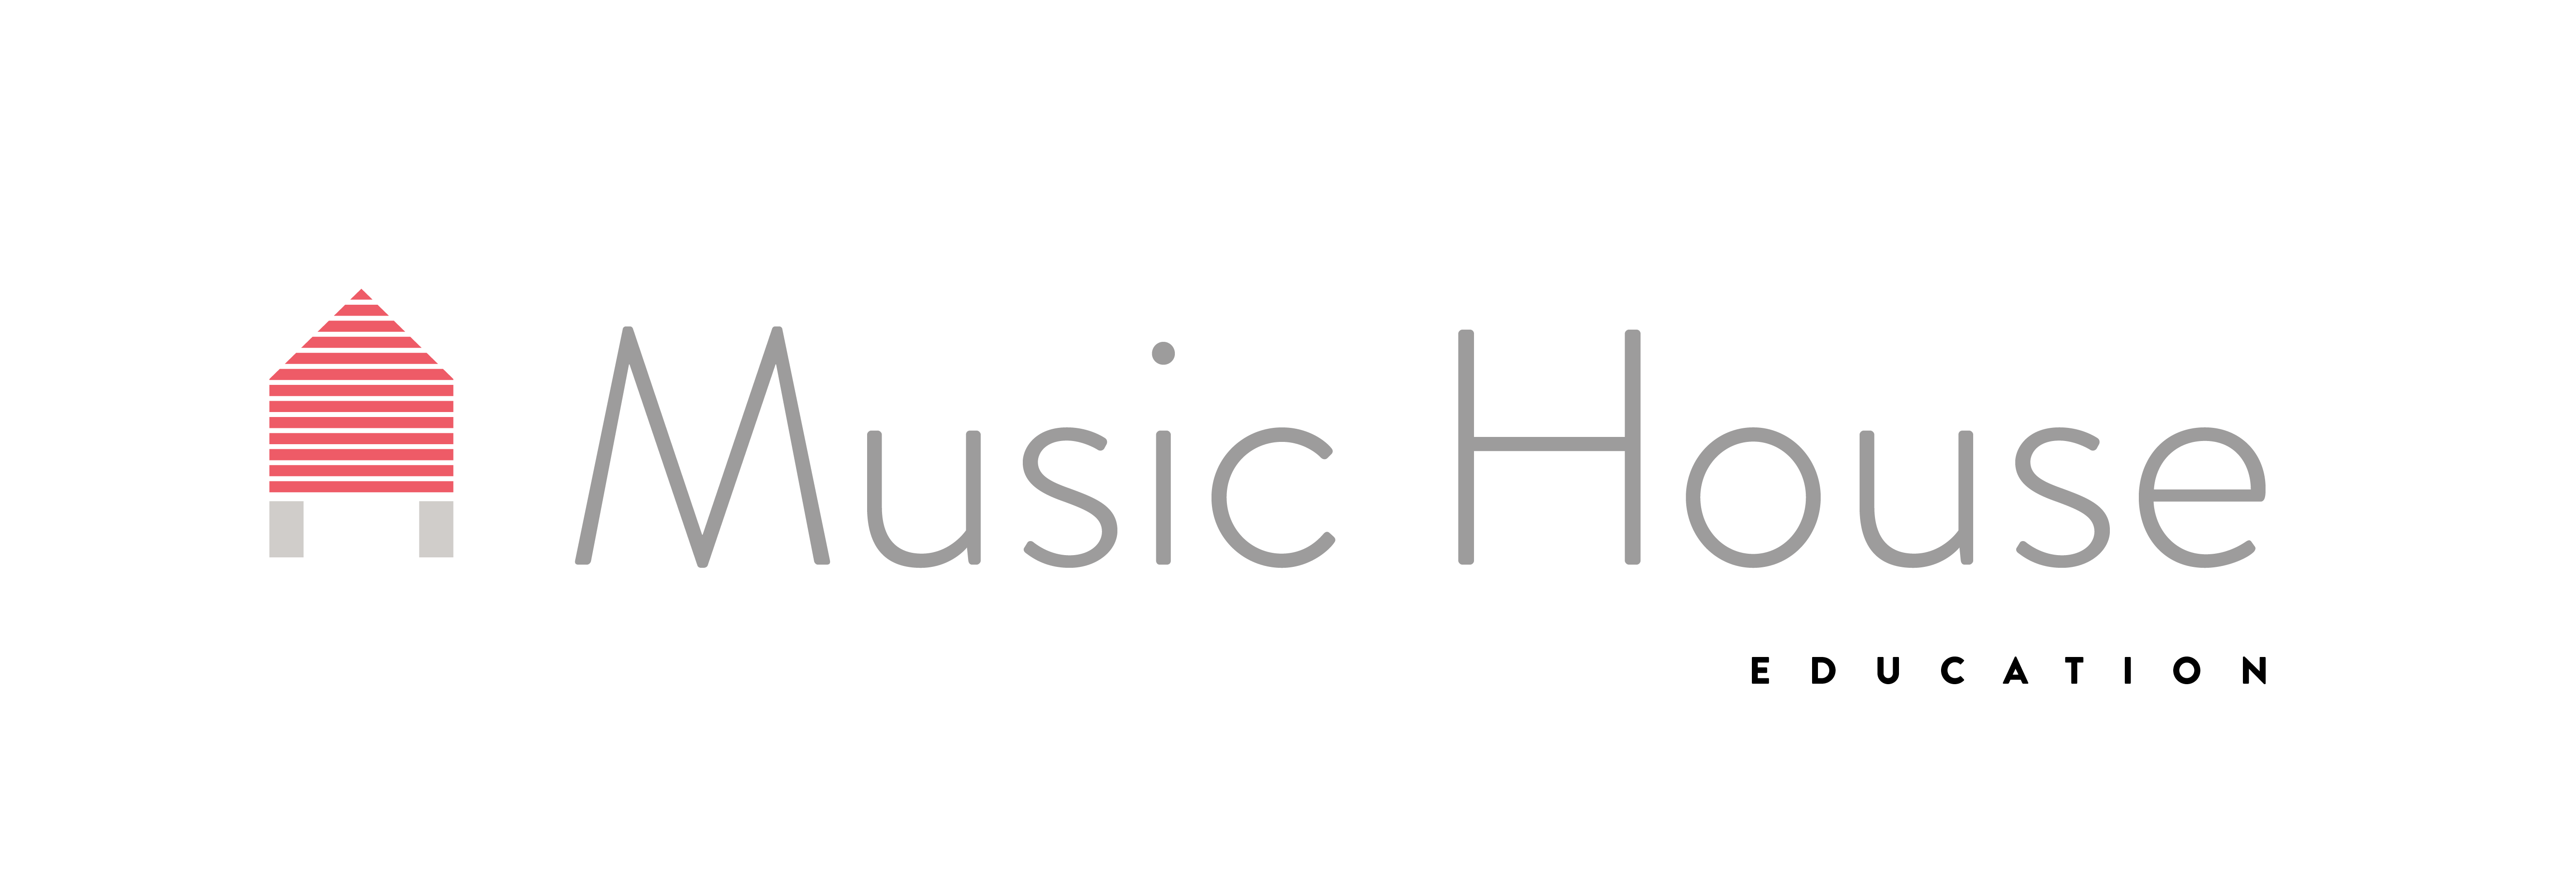 The Music House for Children